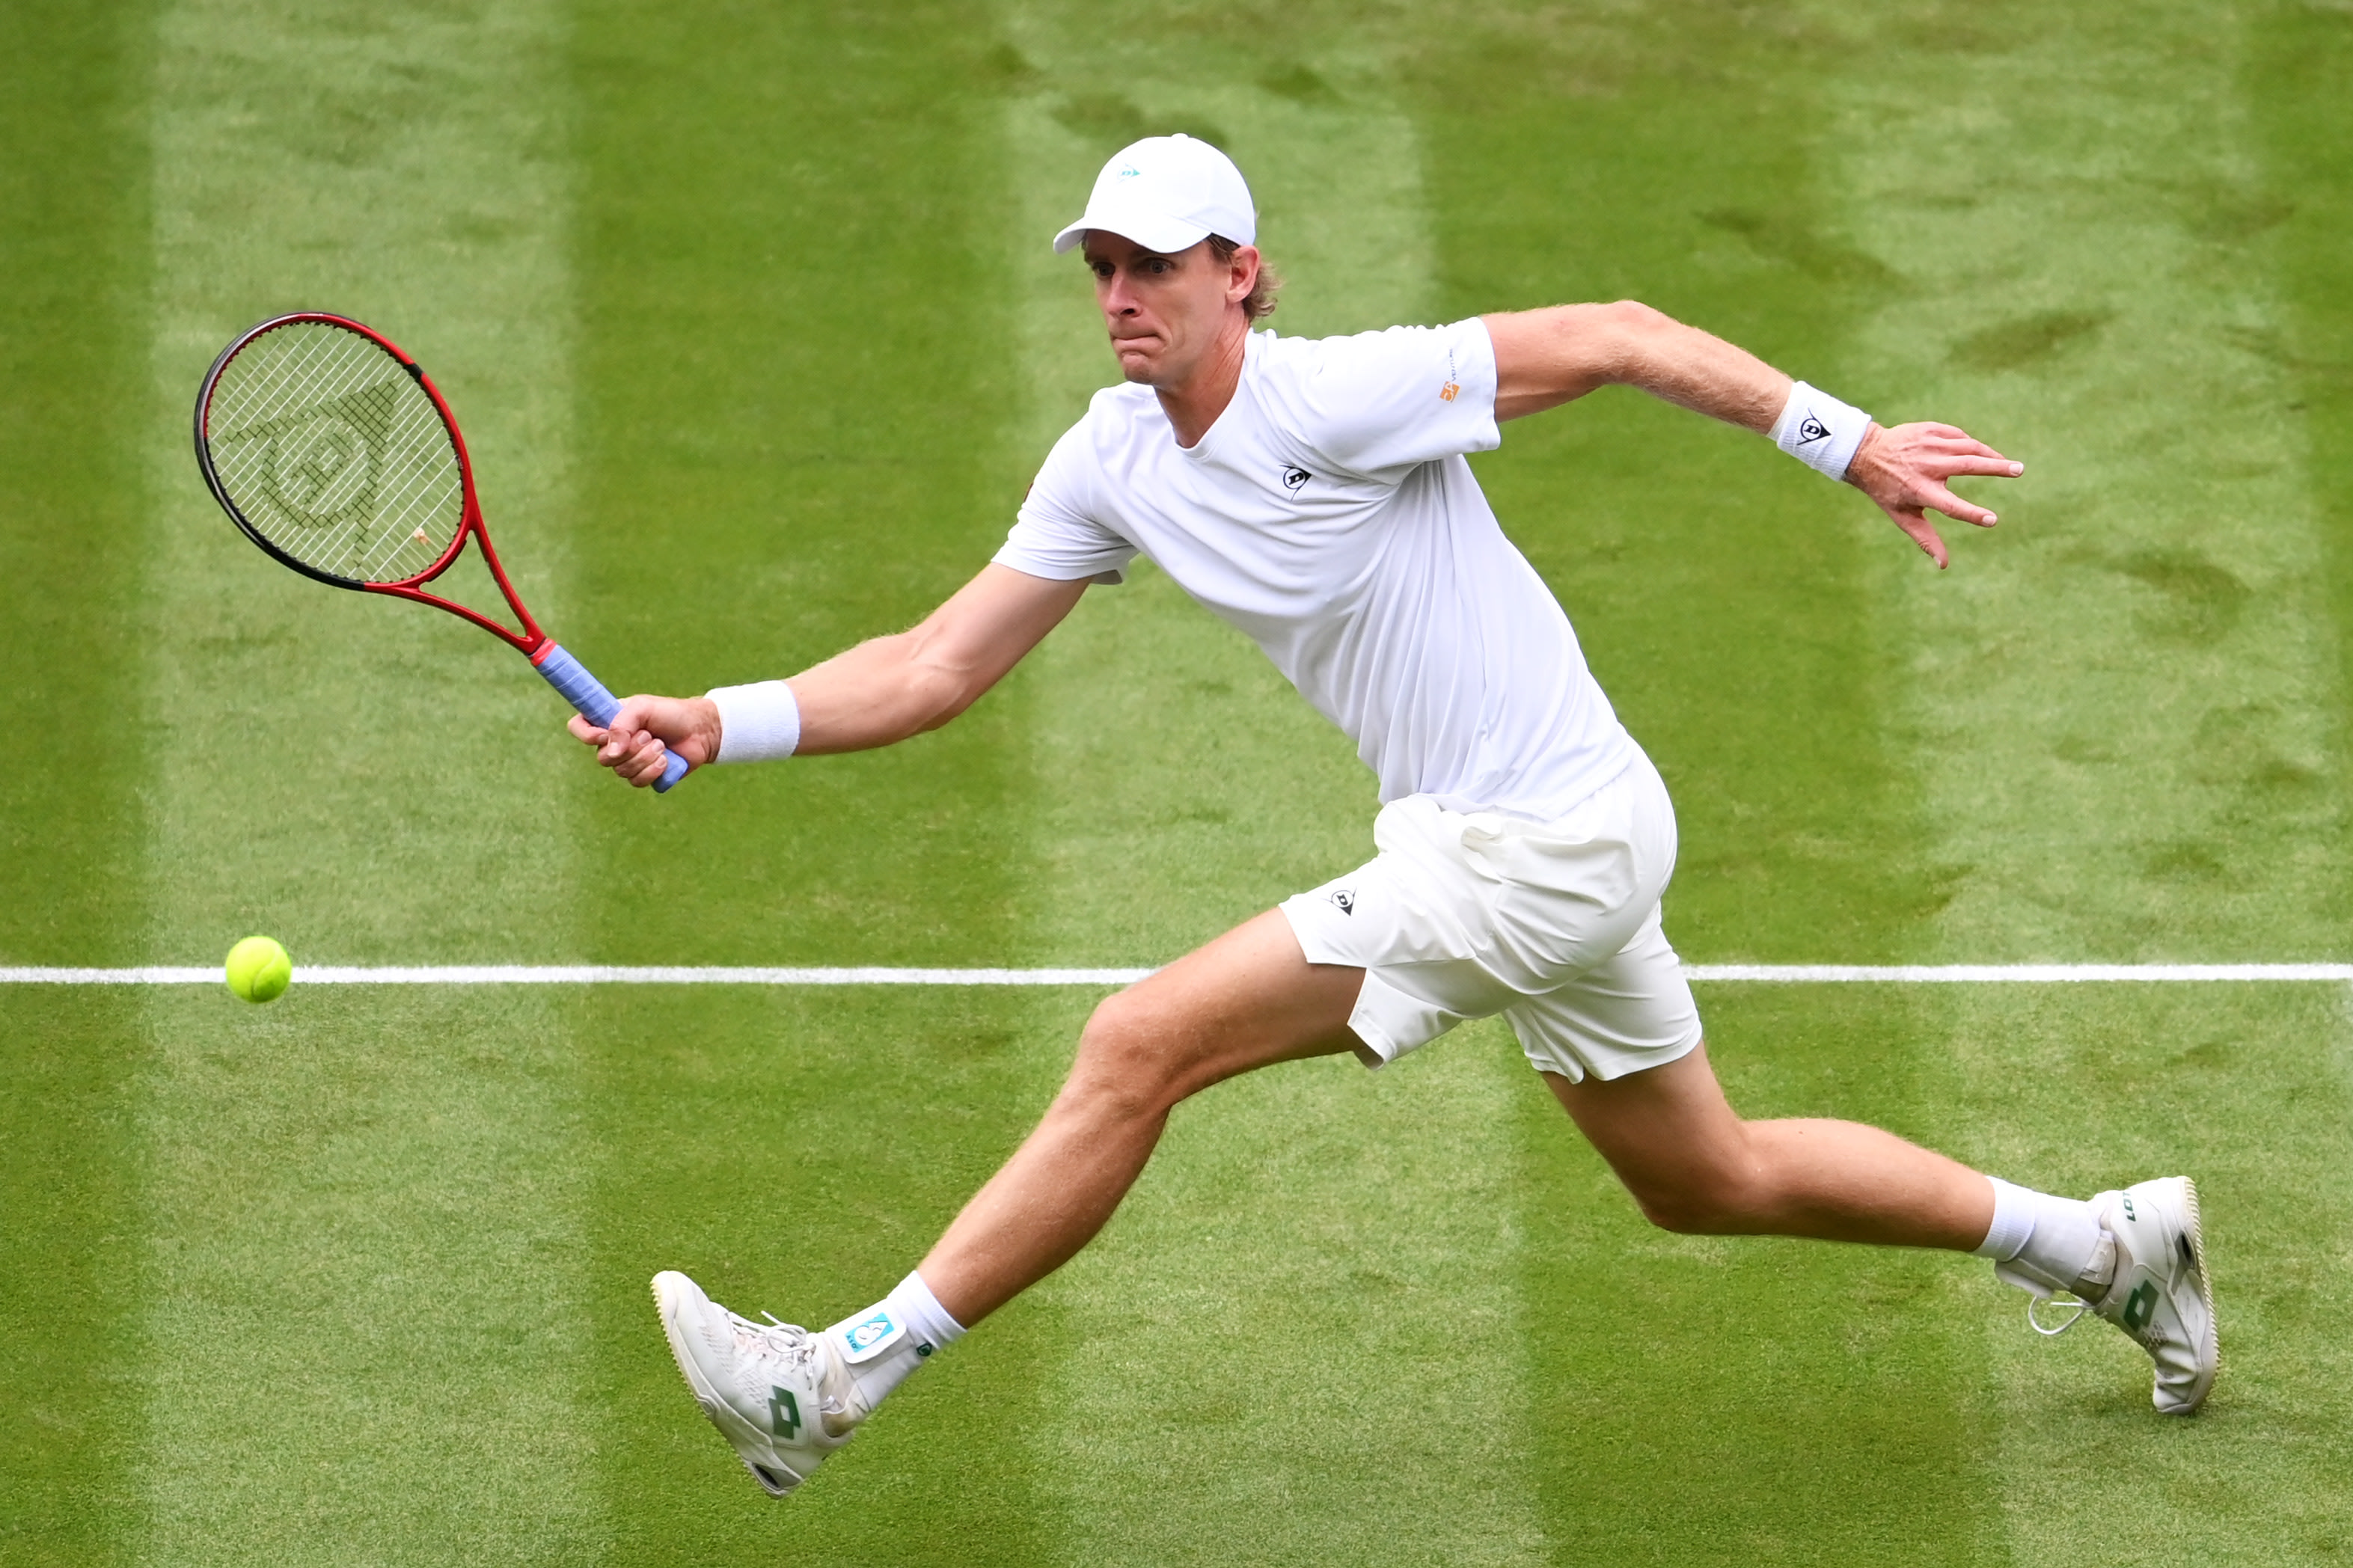 Indian Wells 2021: Kevin Anderson vs Jordan Thompson Tennis Pick and Prediction